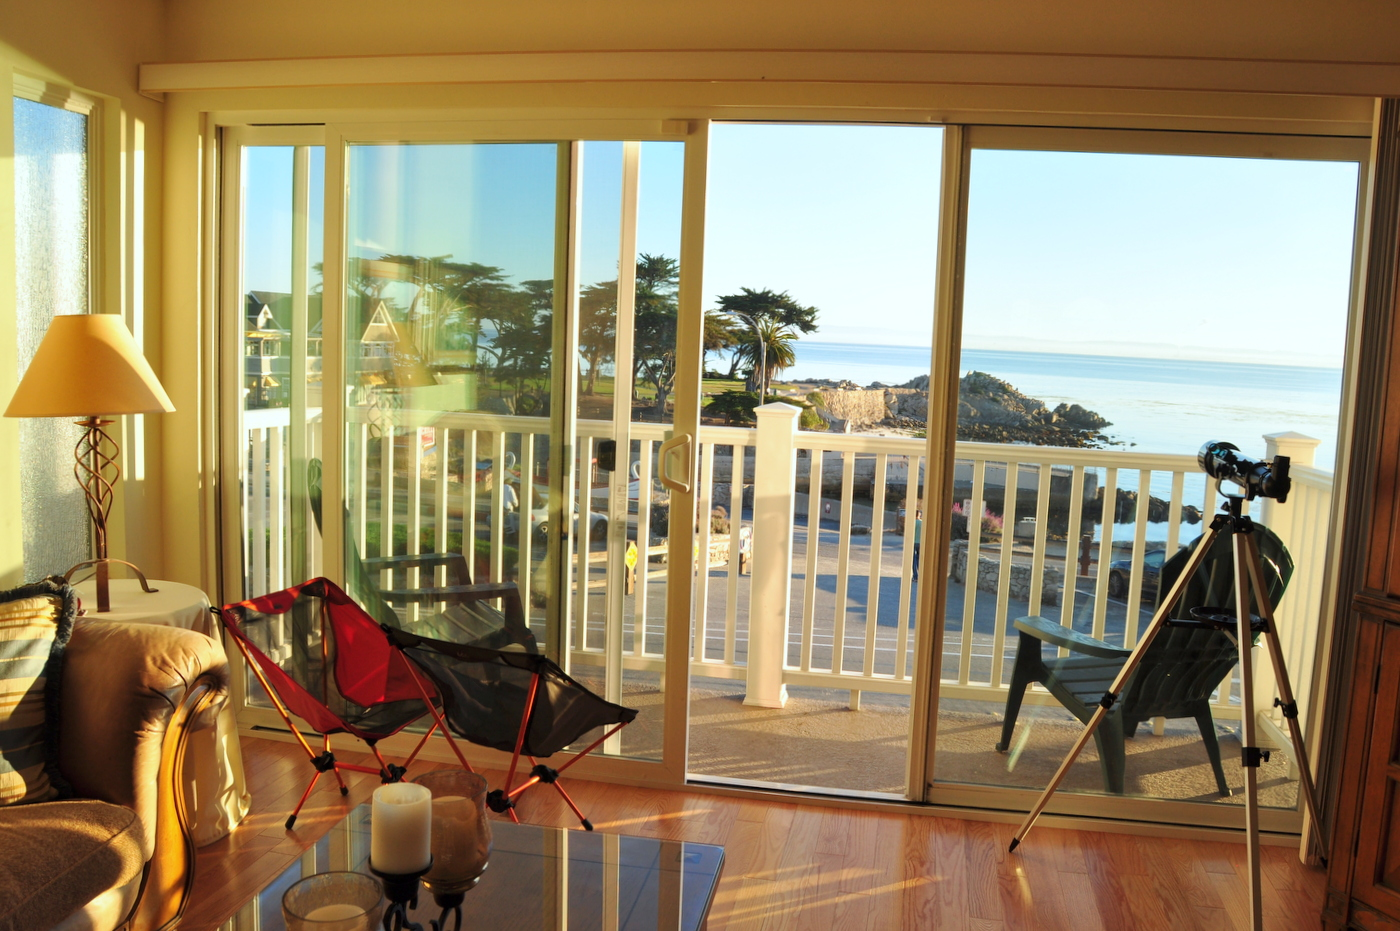 Vacation Home on the coast of Monterey, CA